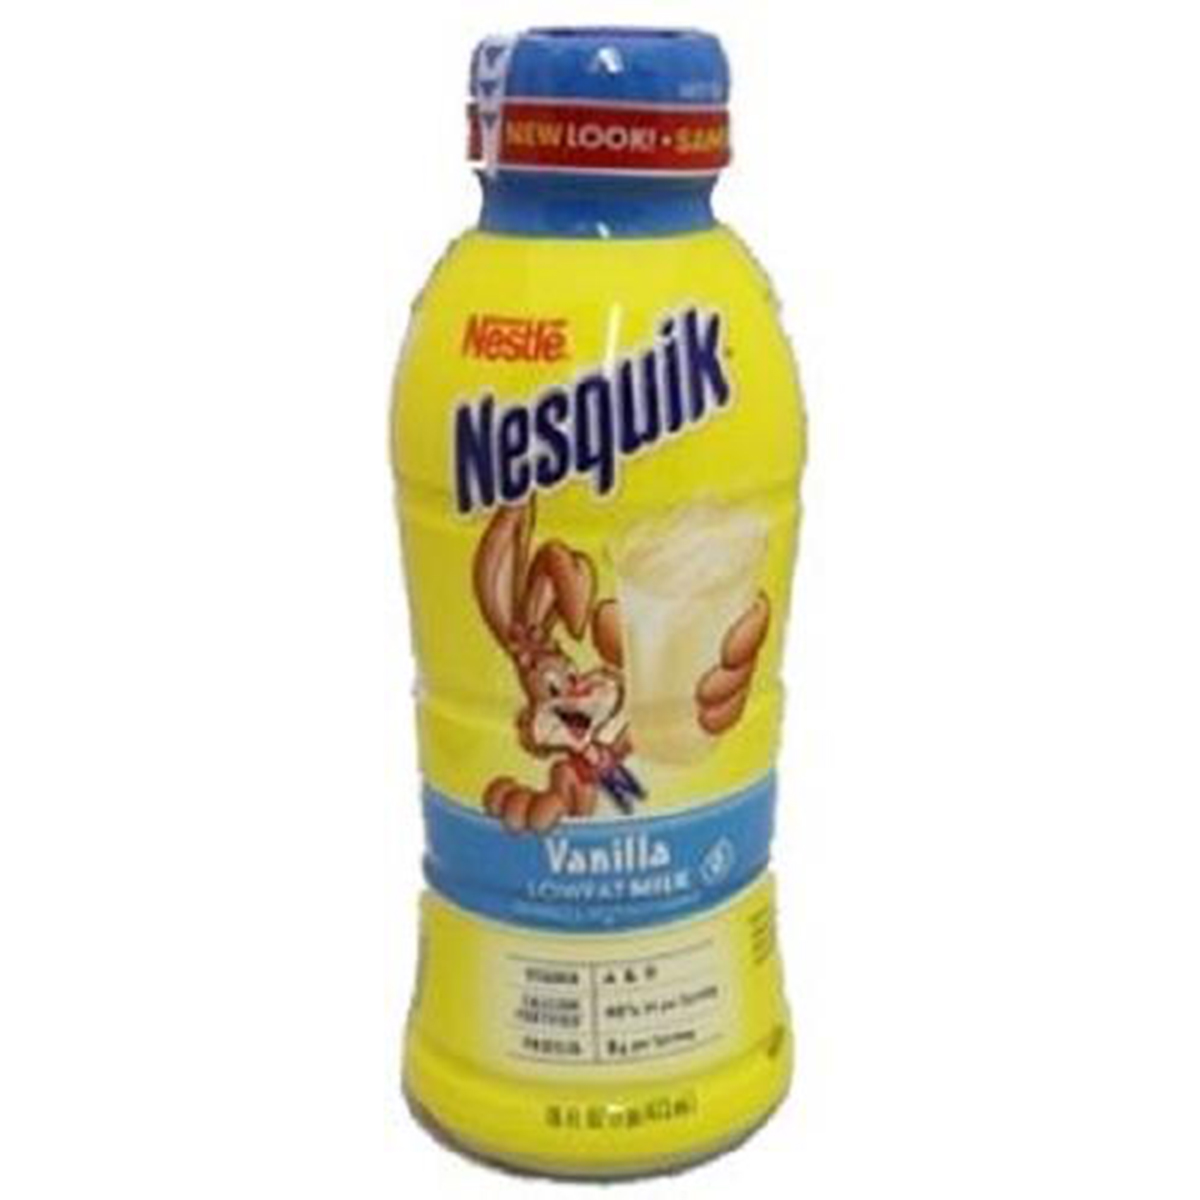 Product Of Nesquik, Low Fat Milk - Vanilla, Count 12 (14 oz) - Milk/Yogurt/Smoothie / Grab Varieties & Flavors